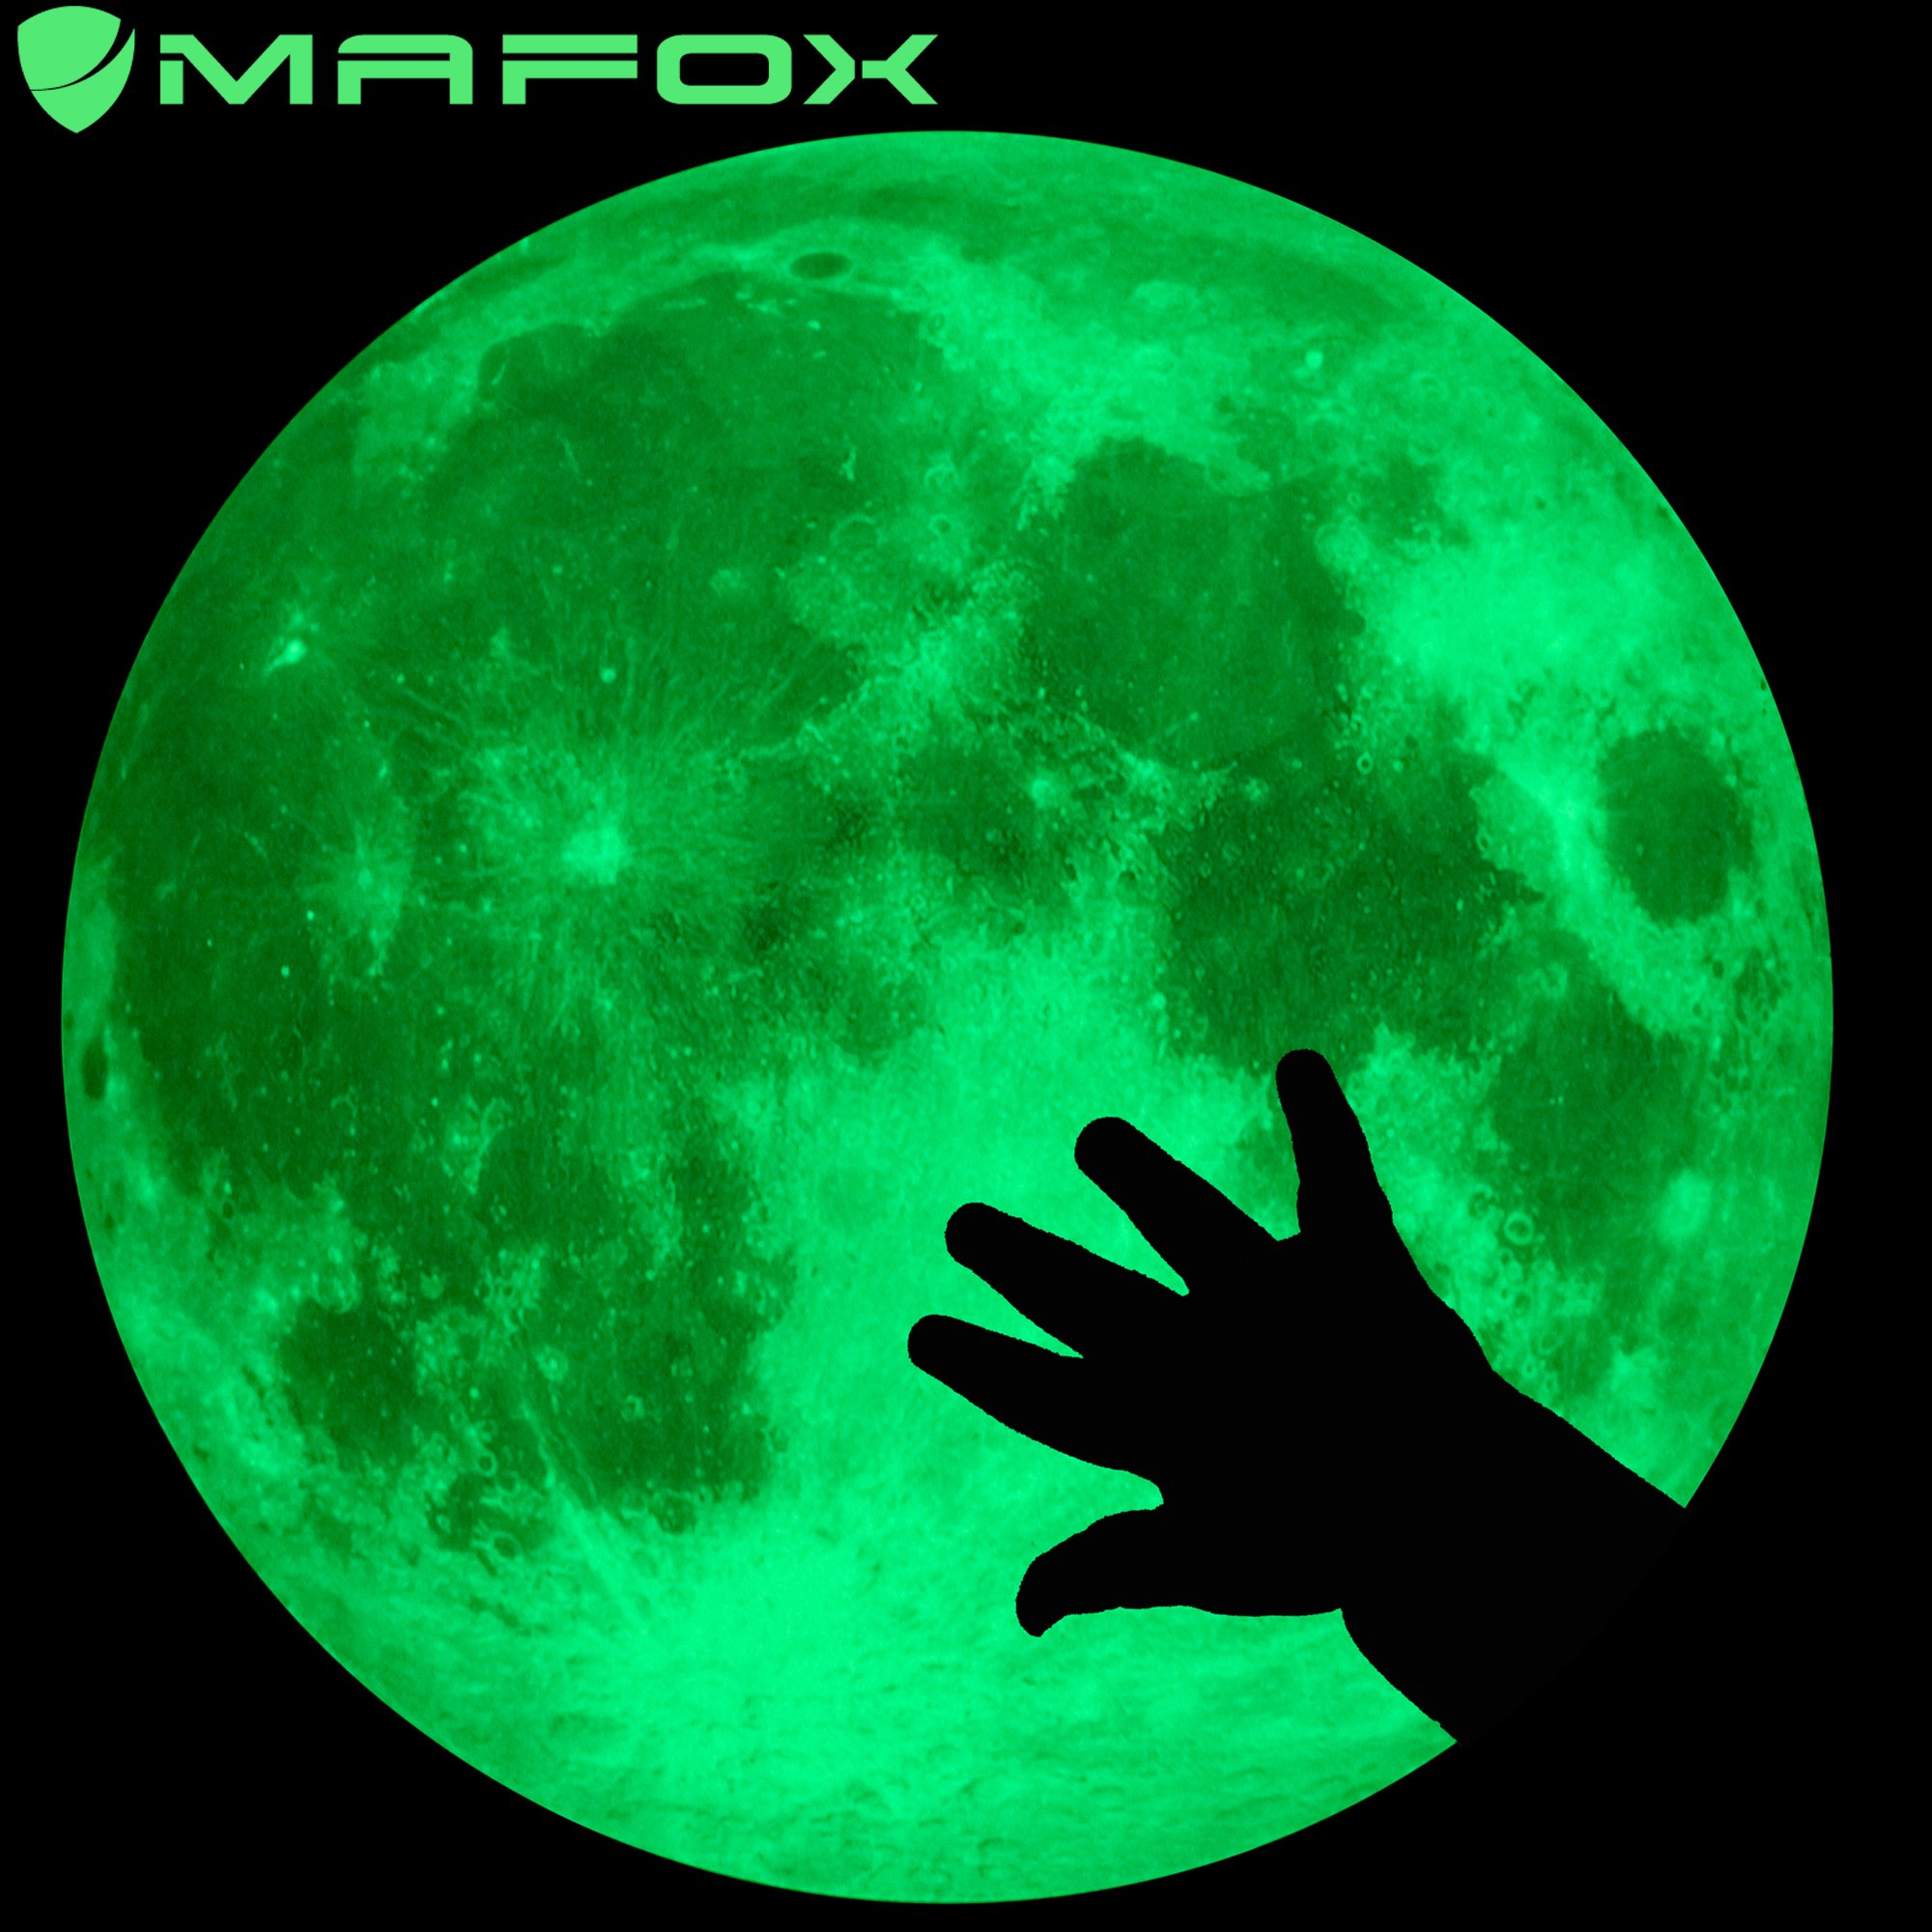 MAFOX Glow in The Dark Wall or Ceiling Stars with Moon Stickers - Luminous Decal Stickers for Simulated Moon Effect at Night - Ideal Kids Decor or Adults - Perfect Gift Kids Boys Girls by MAFOX